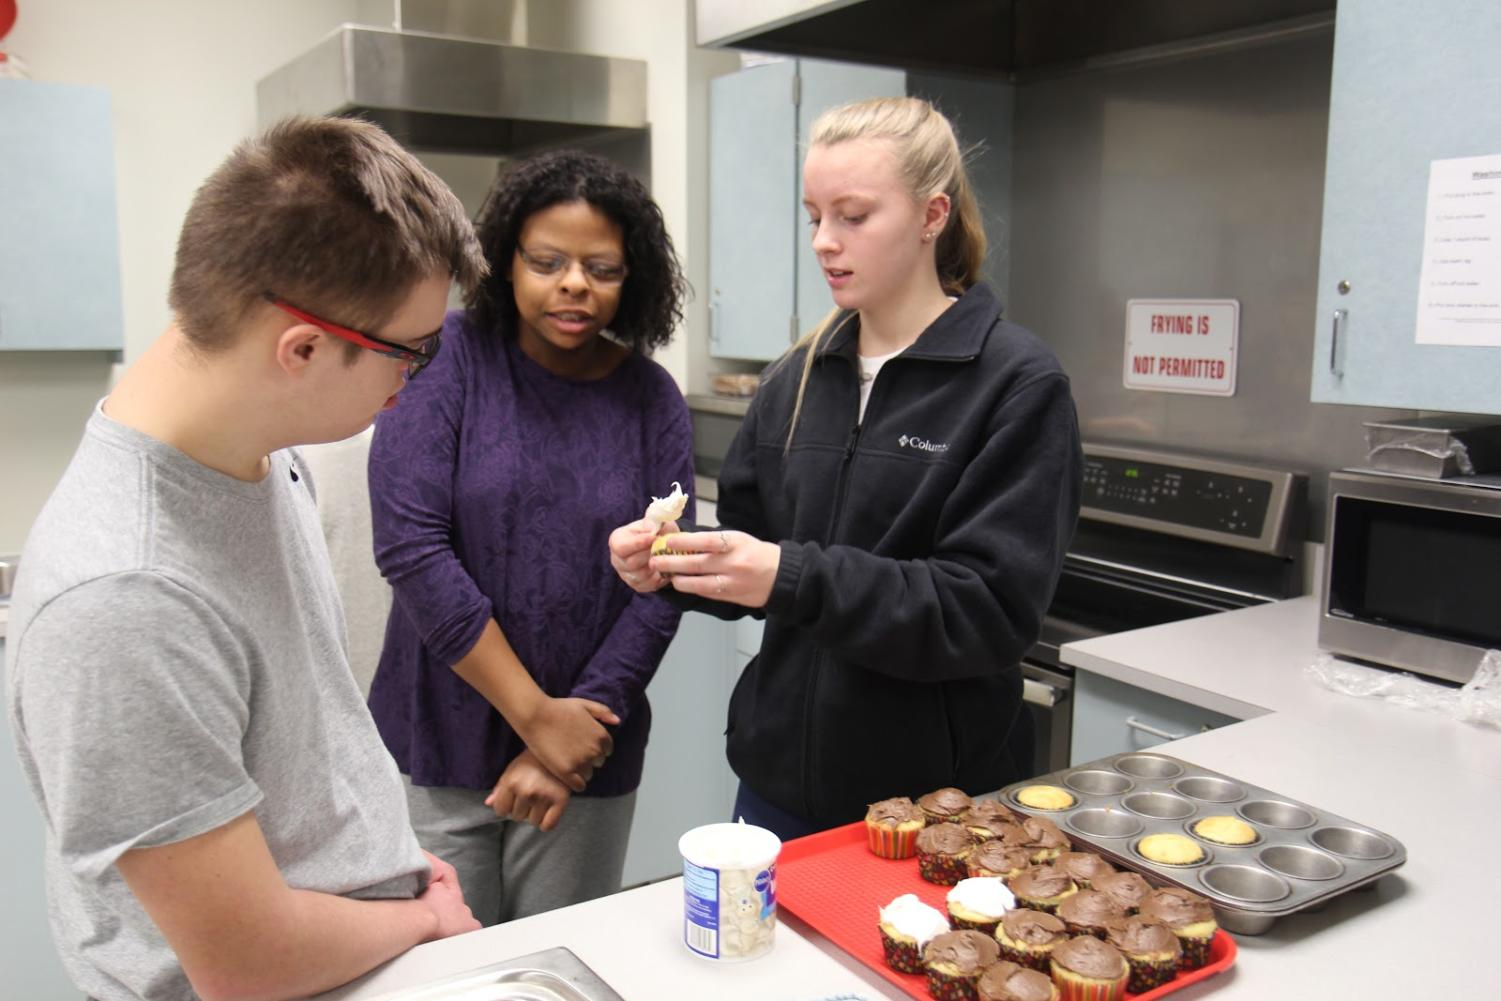 Brendan Morris and Lindsey Scales, juniors, work with Bryah Trenn, junior, to ice cupcakes in their fifth hour Life After High School class.